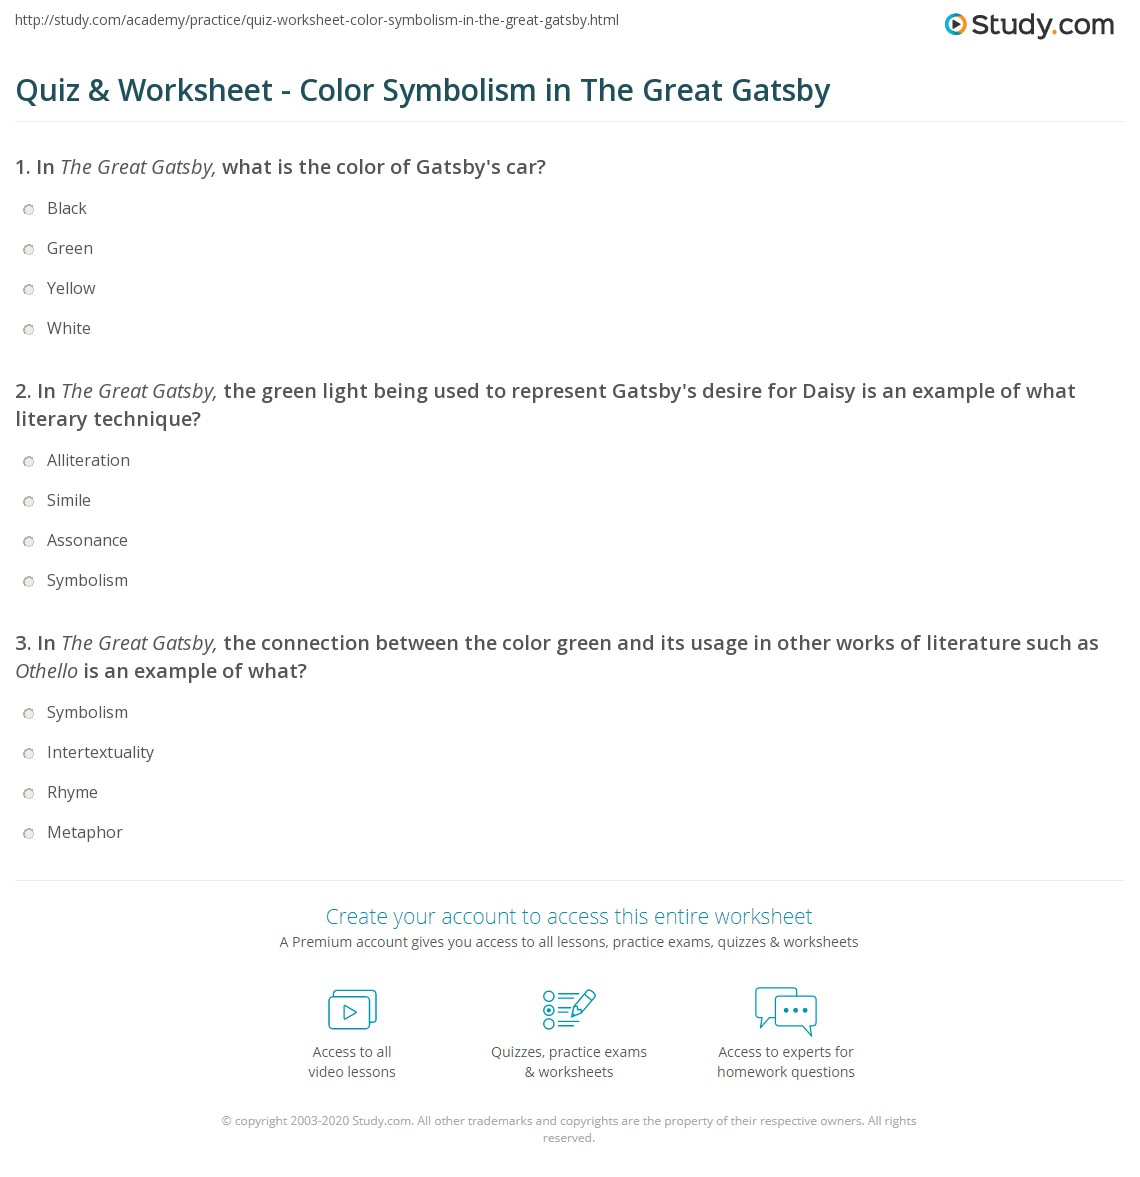 Quiz & Worksheet Color Symbolism In The Great Gatsby